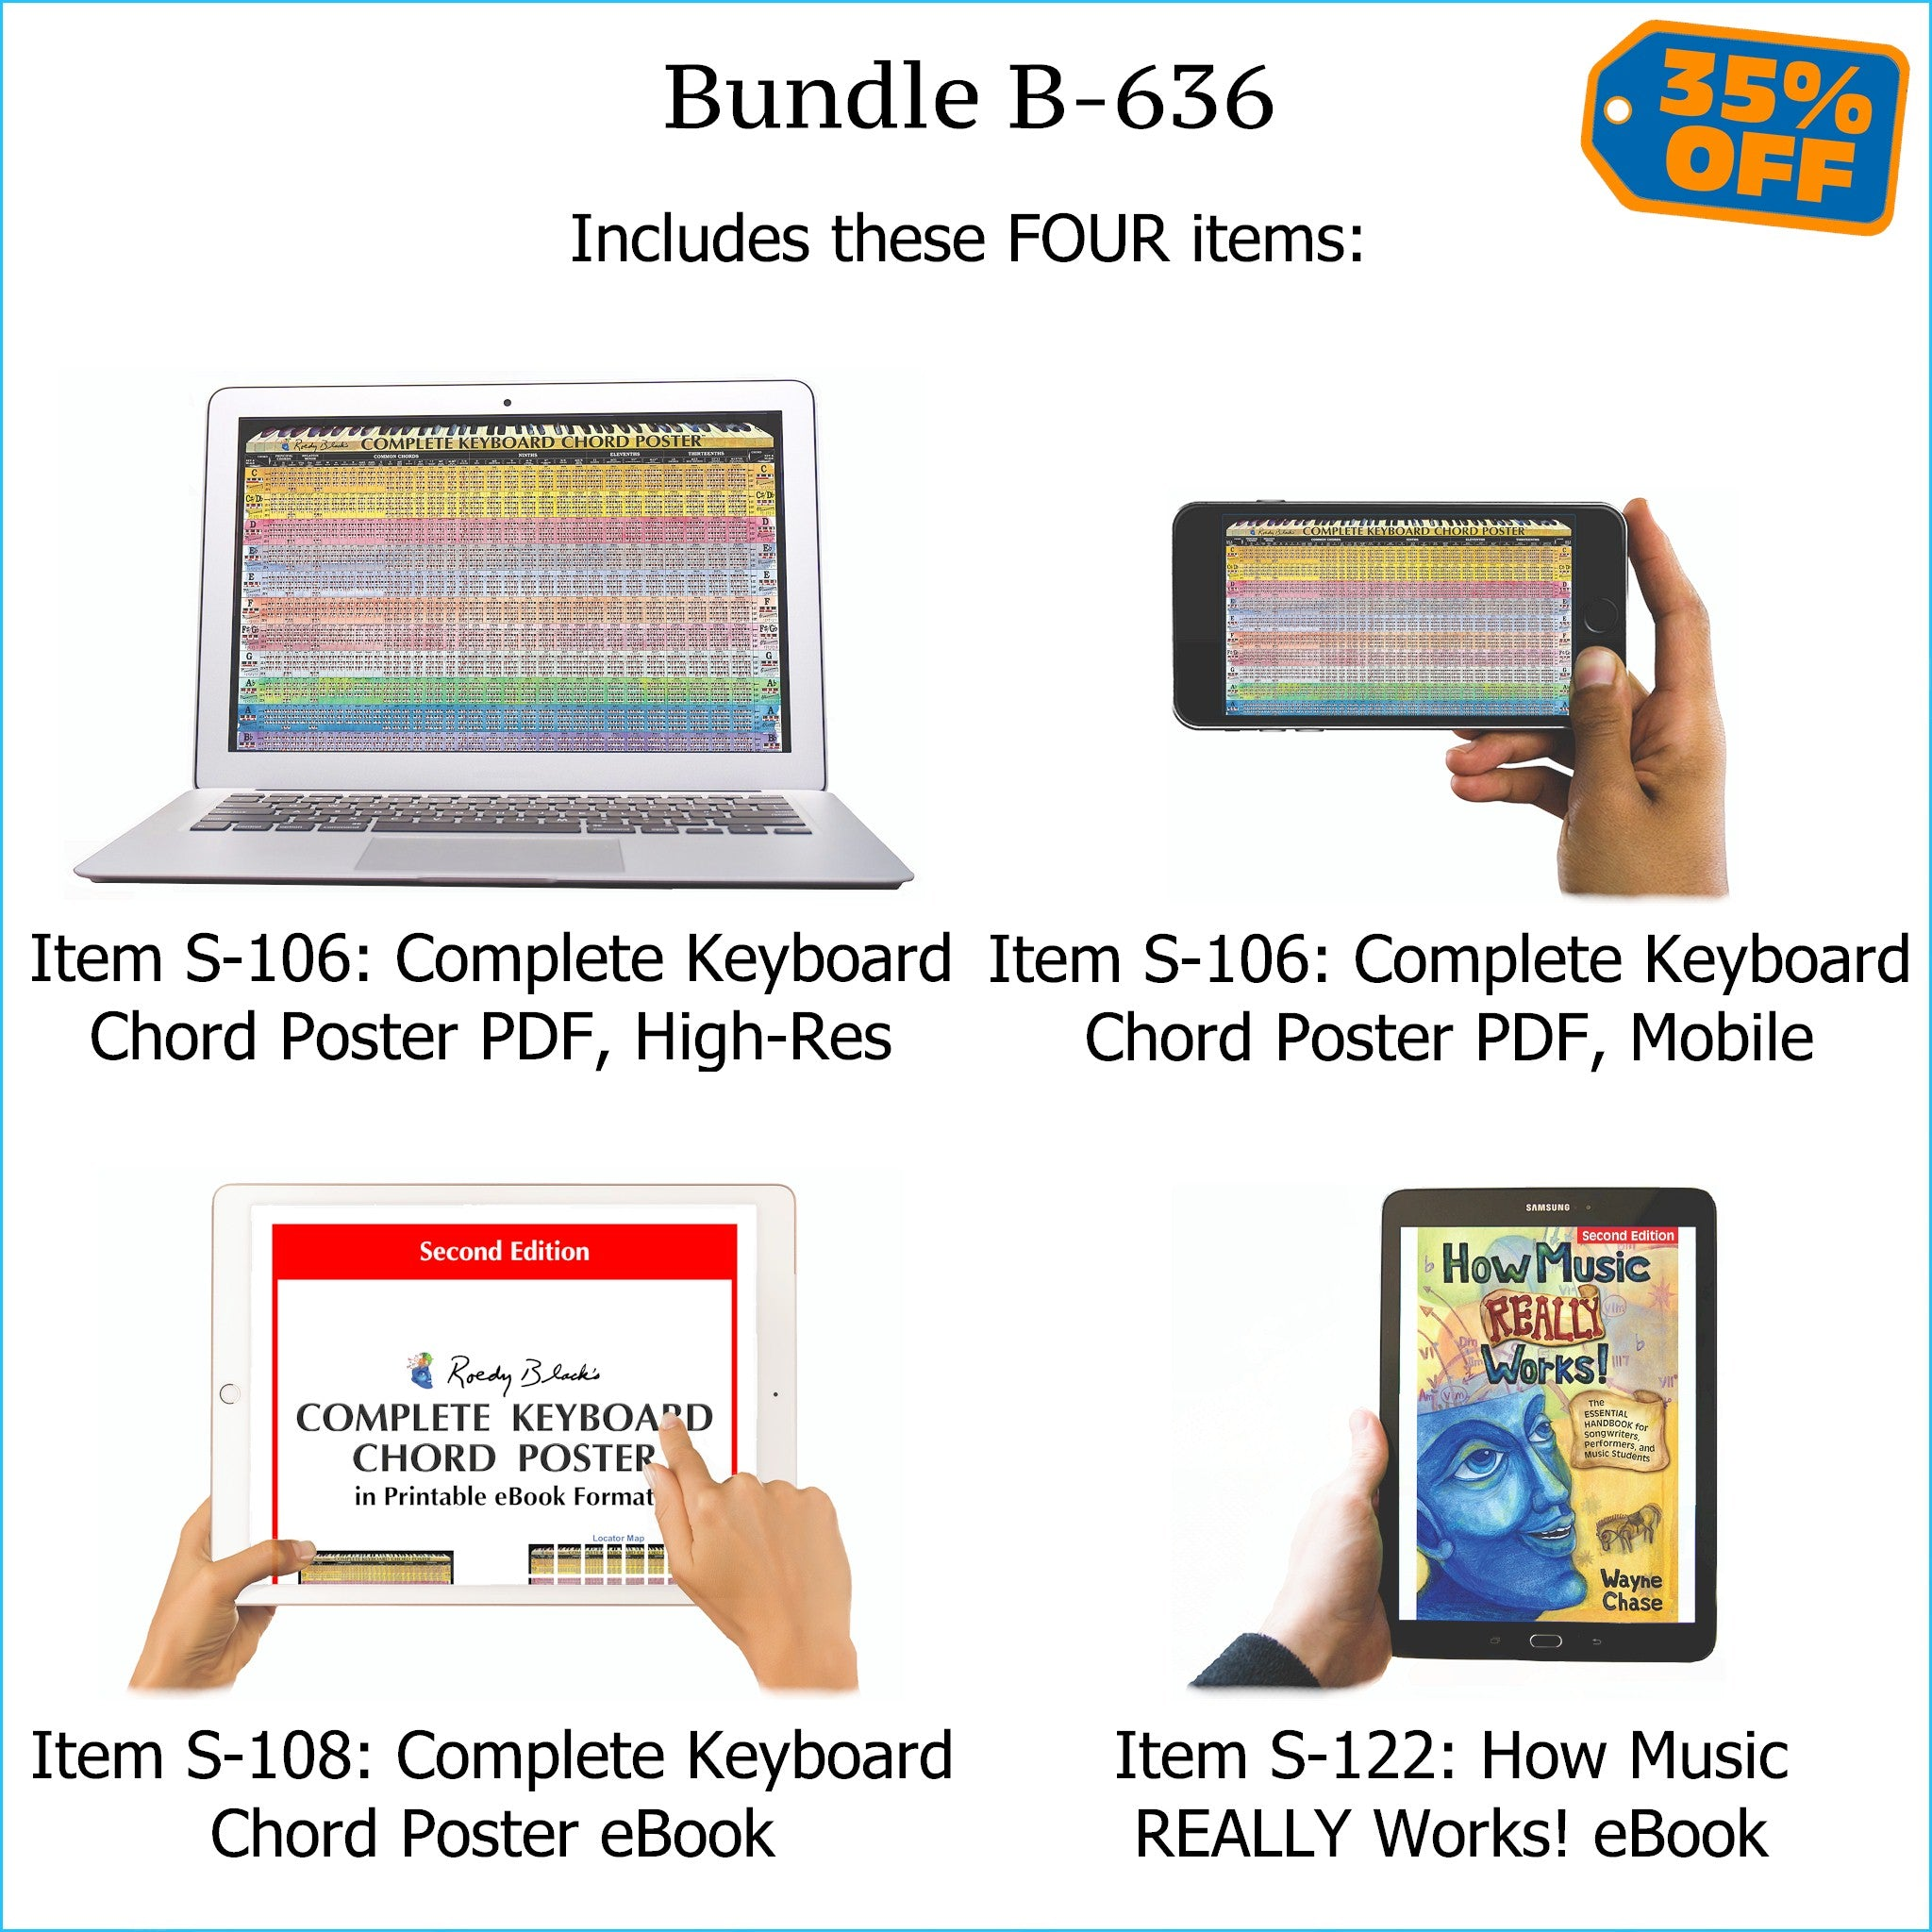 Bundle B-636: How Music REALLY Works! E-Book + Keyboard Chords - E-Posters and Printable E-Book. FREE Download Protection.